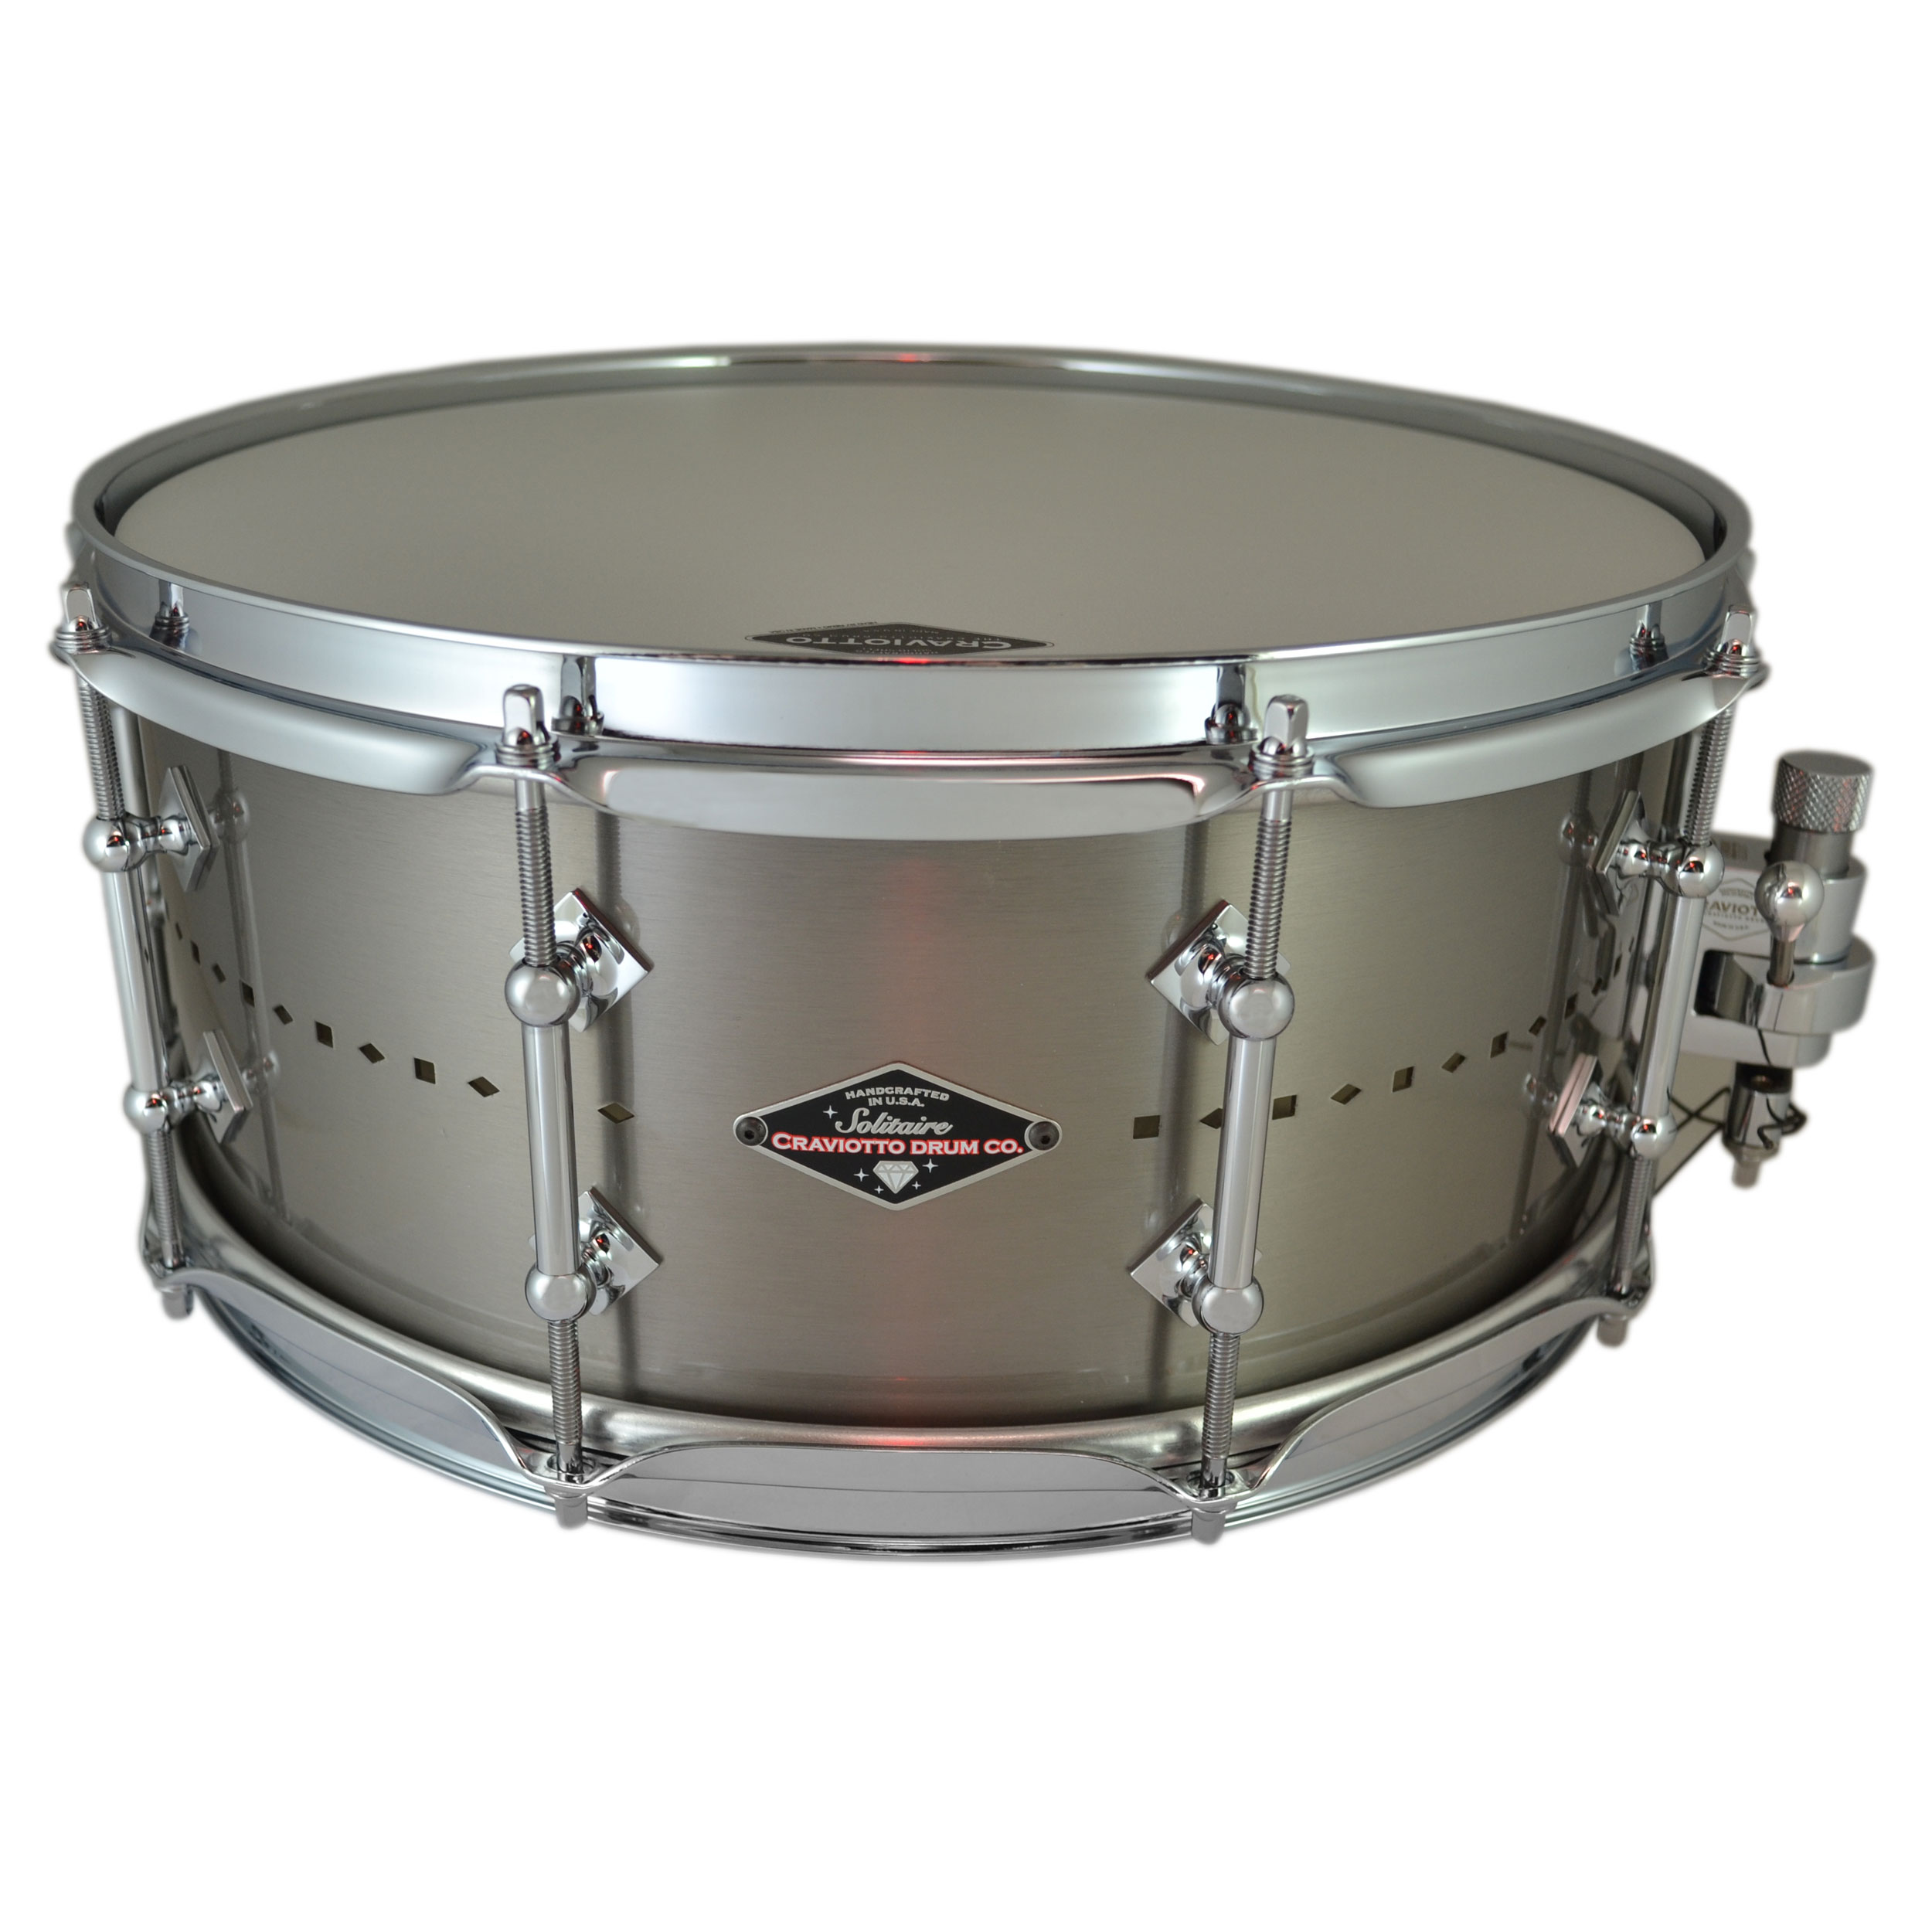 "Craviotto 6"" x 14"" Solitaire Vented Titanium Snare Drum"